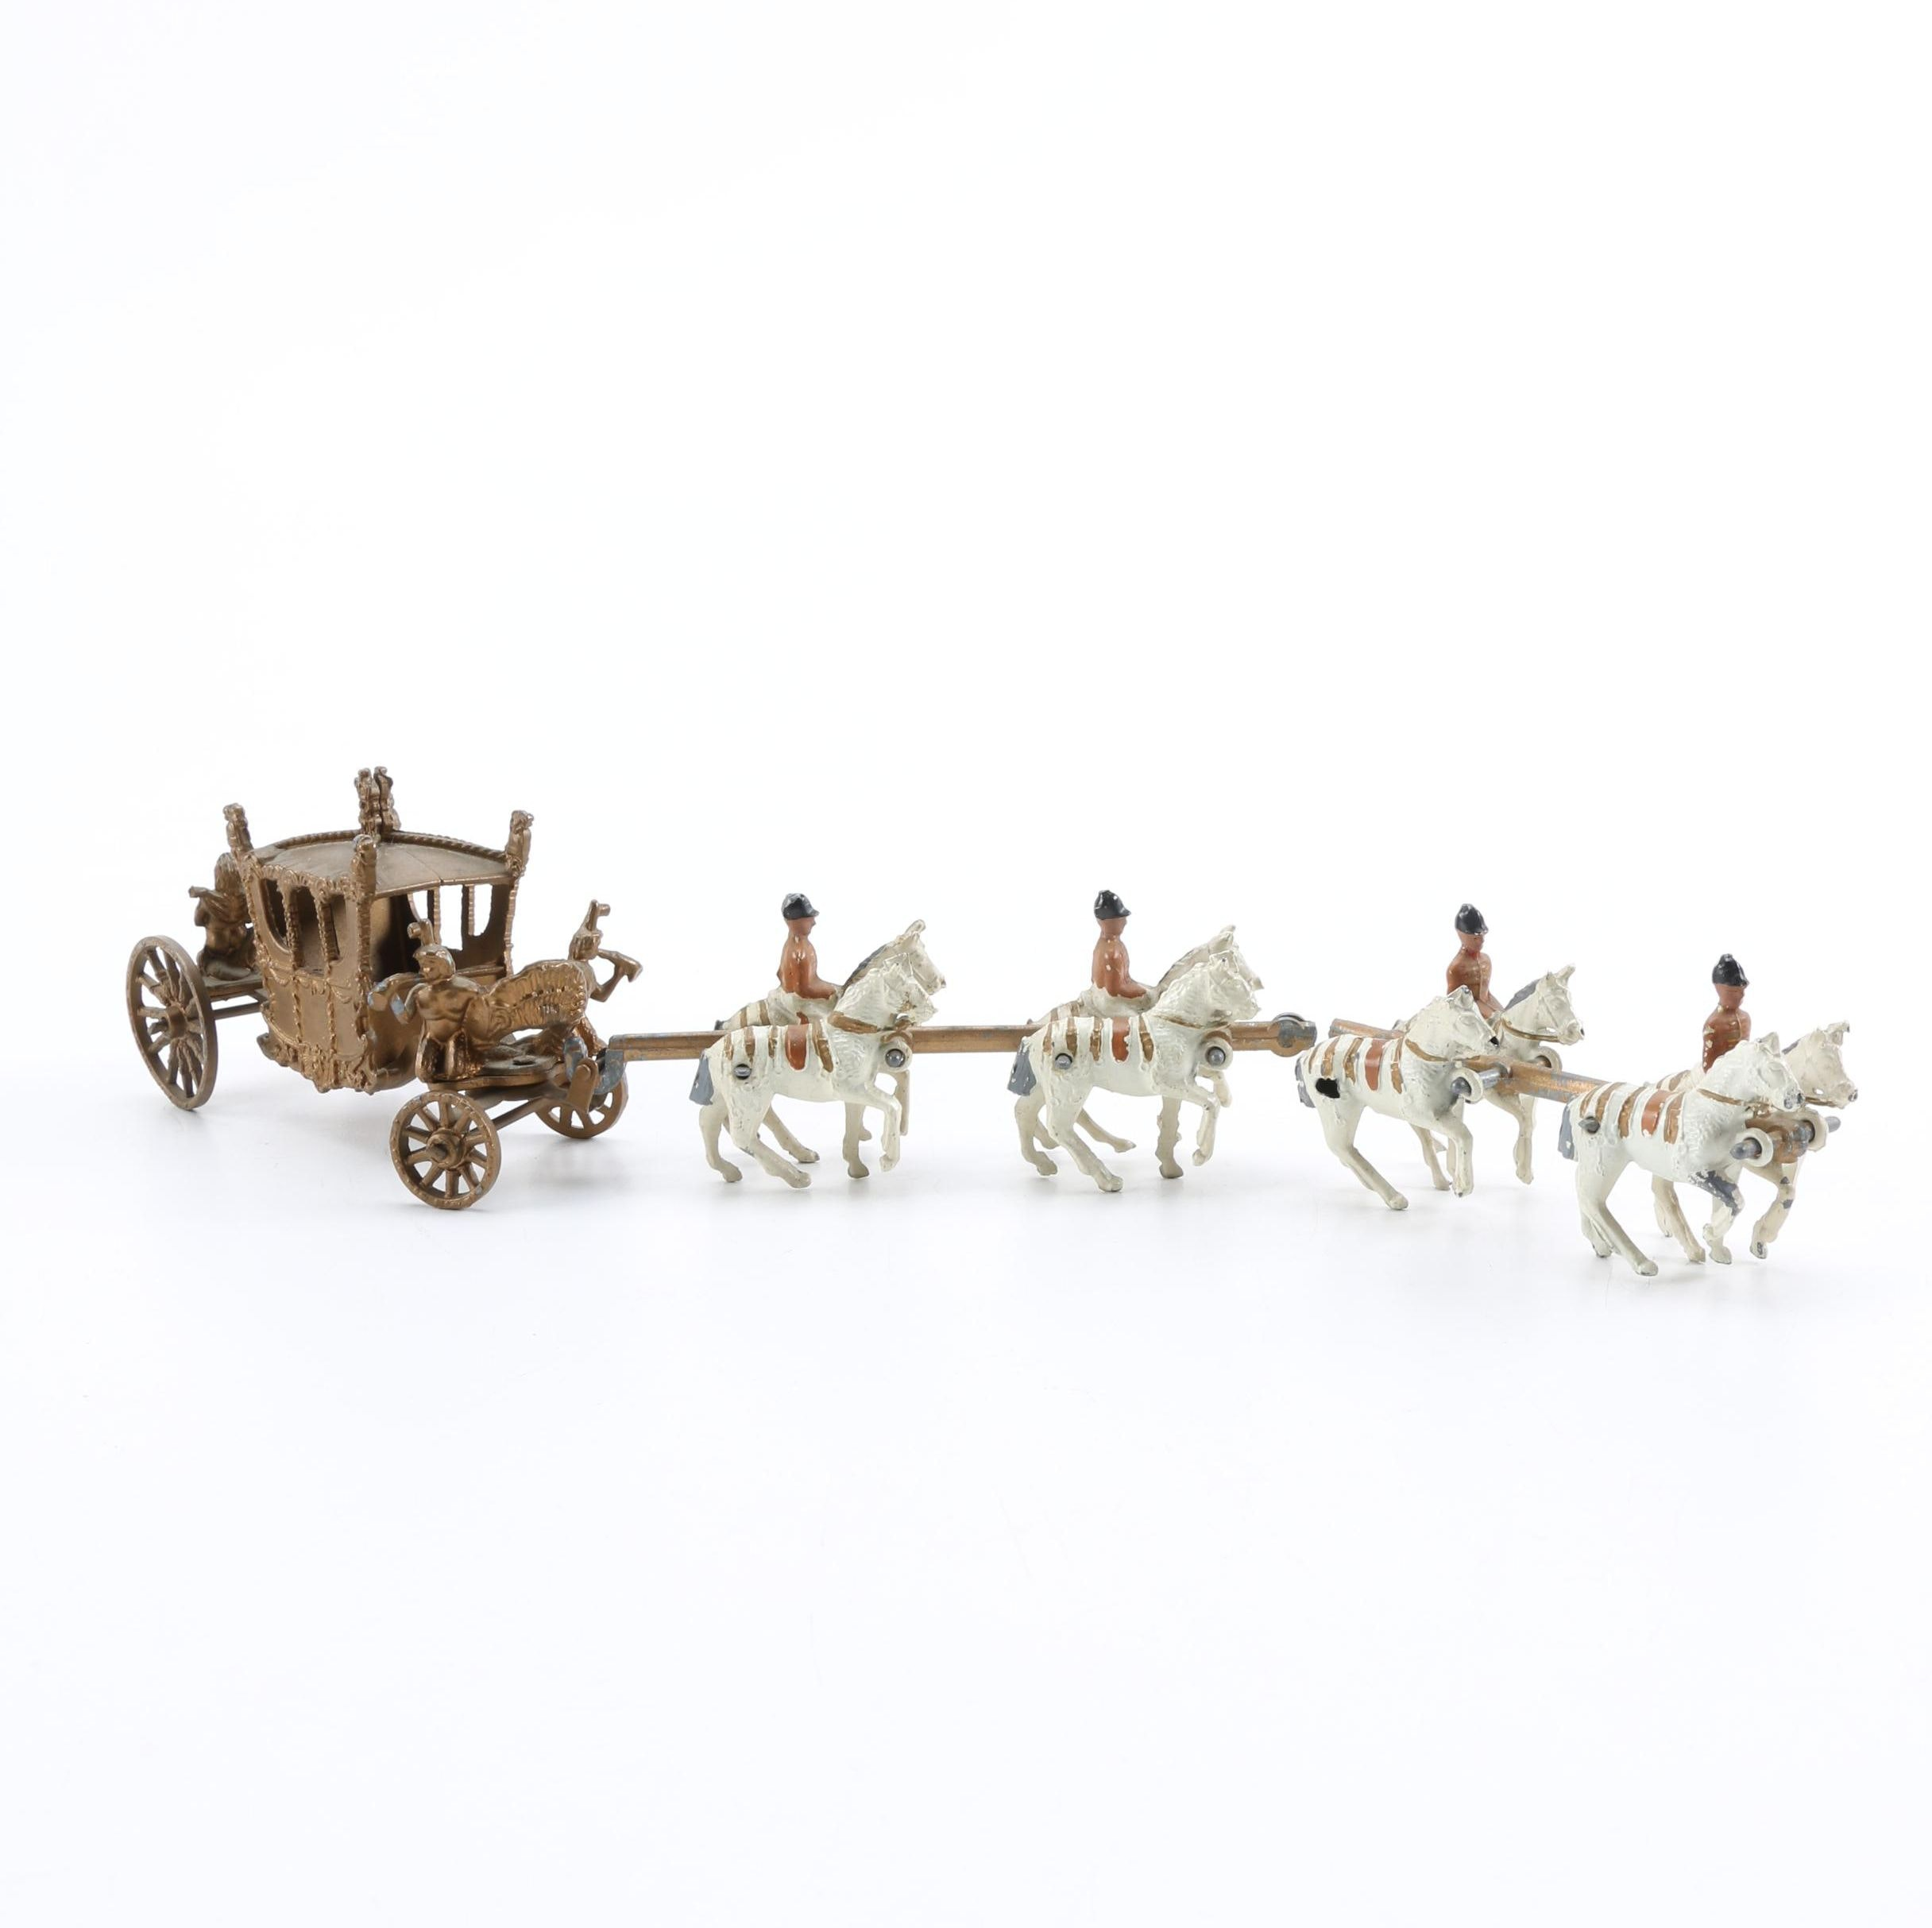 Decorative Horses And Carriage